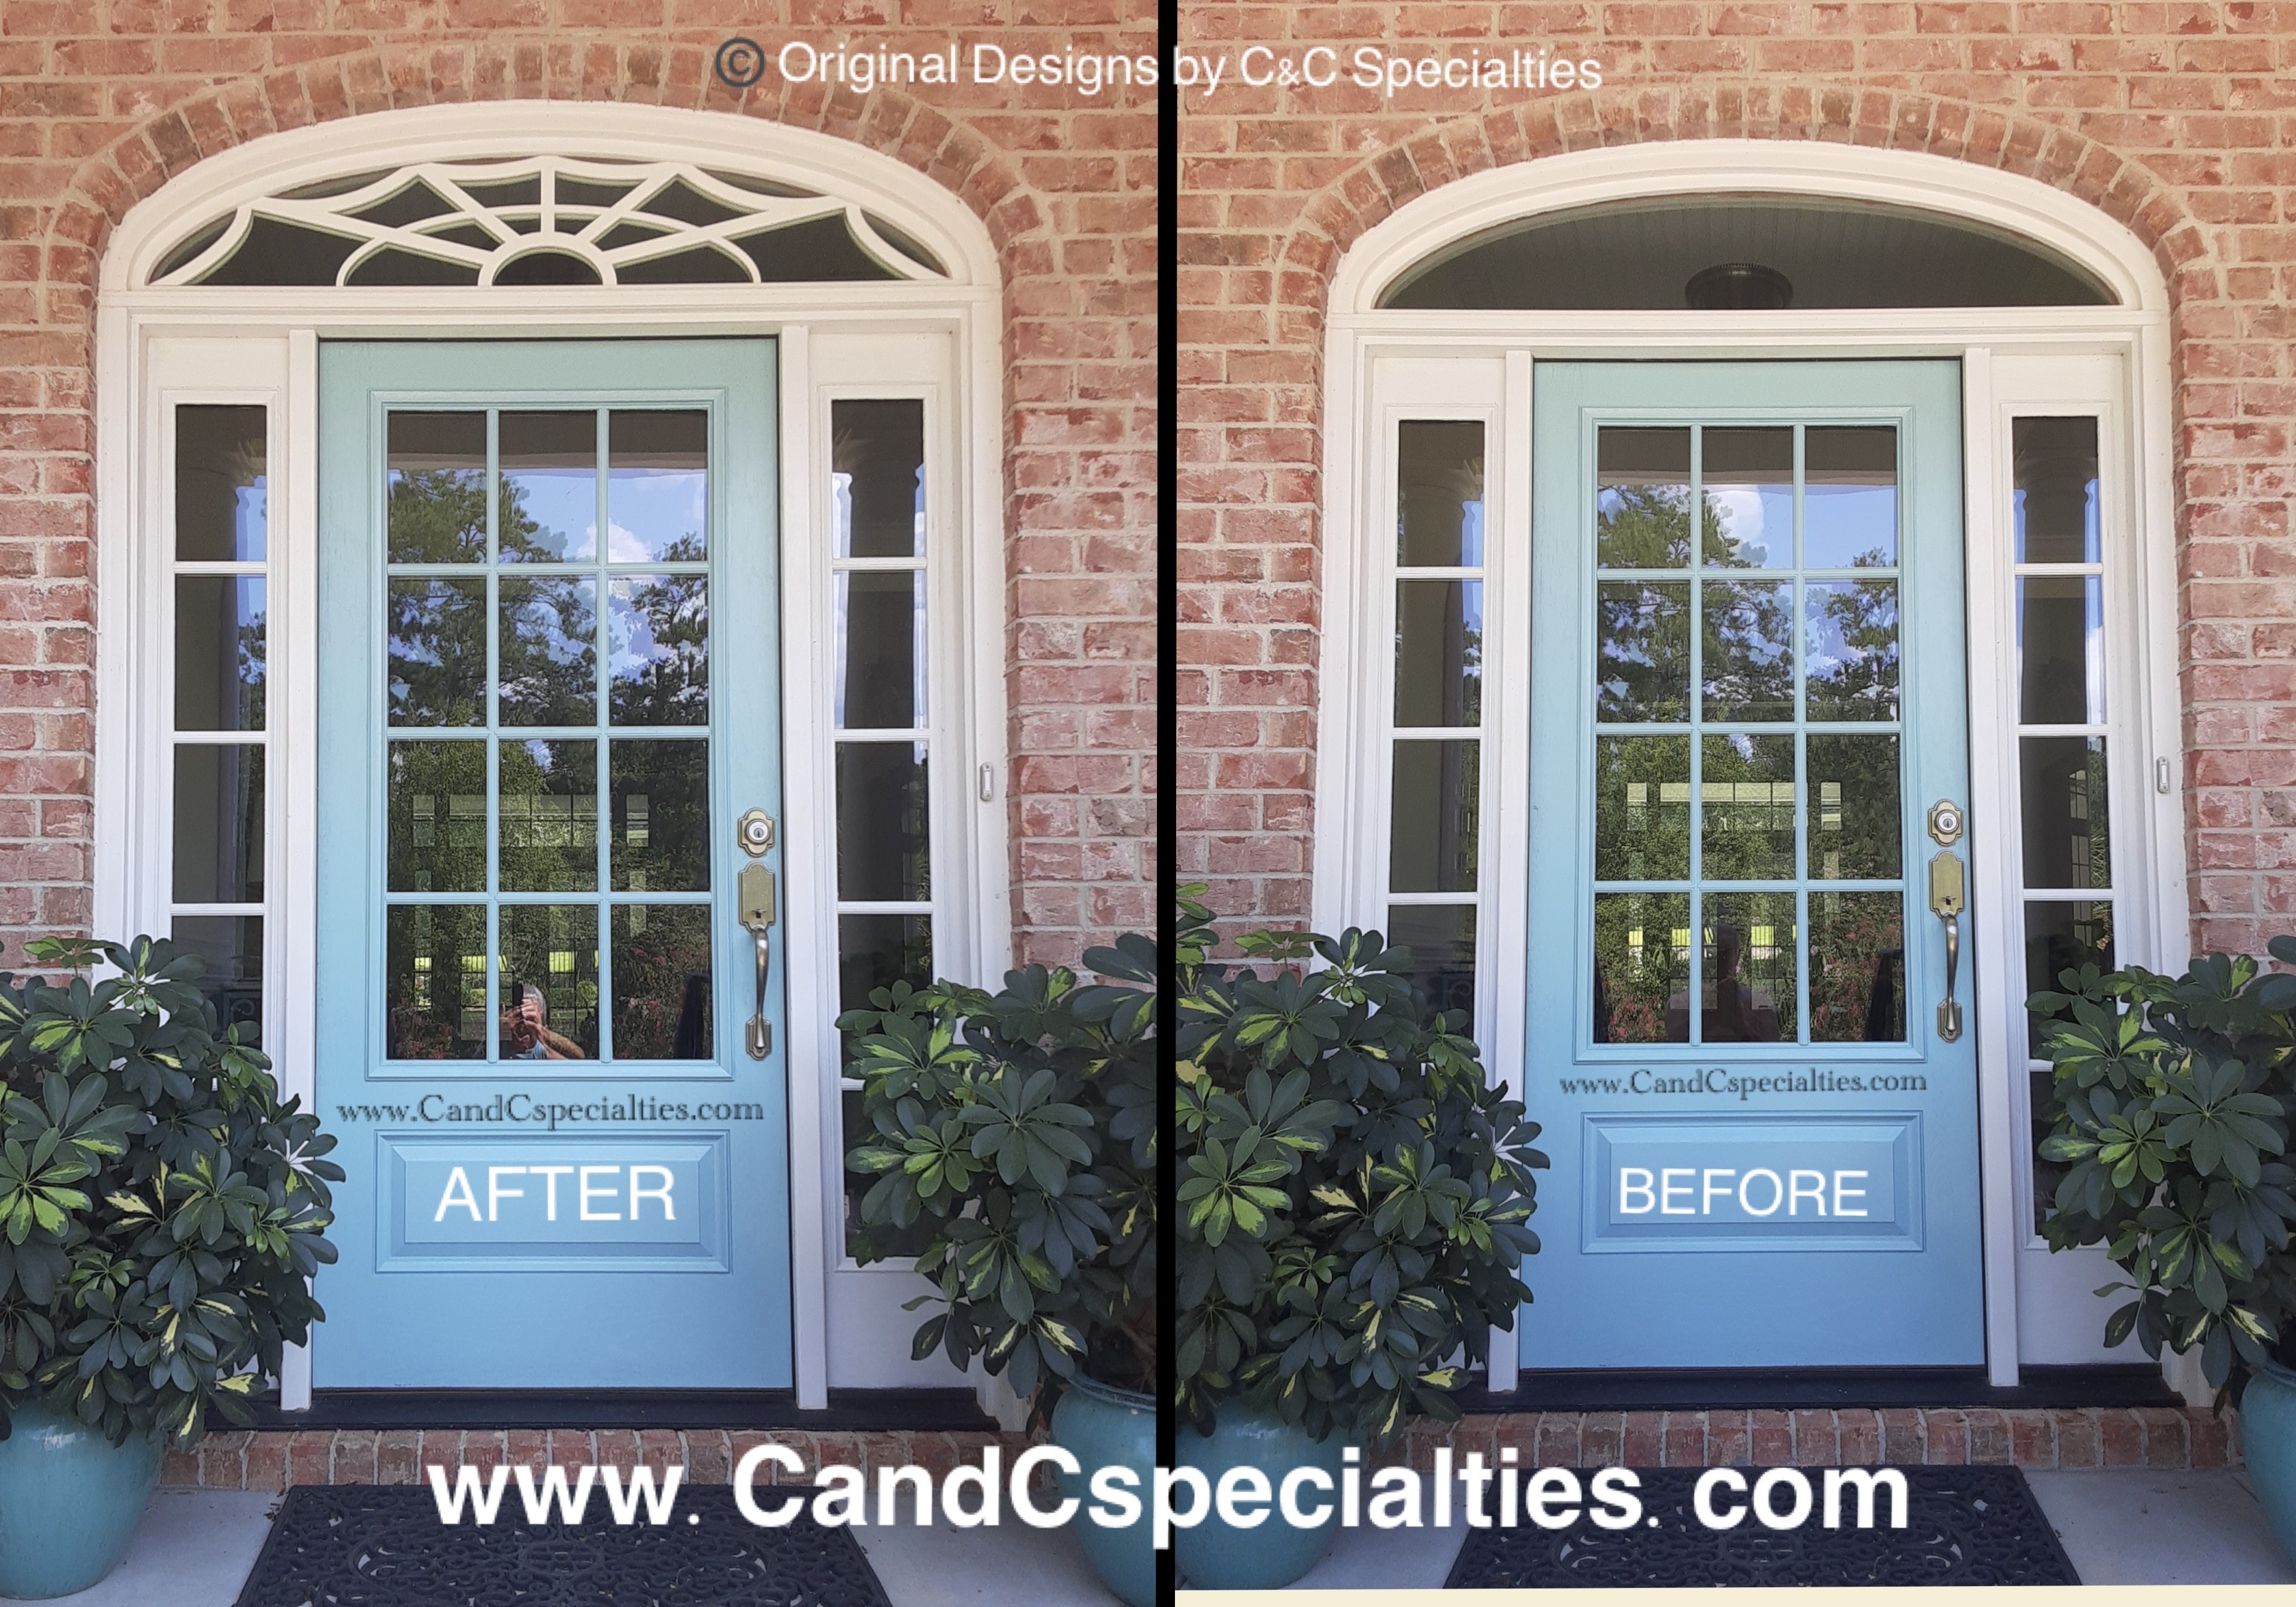 TRANSOM BEFORE & AFTER